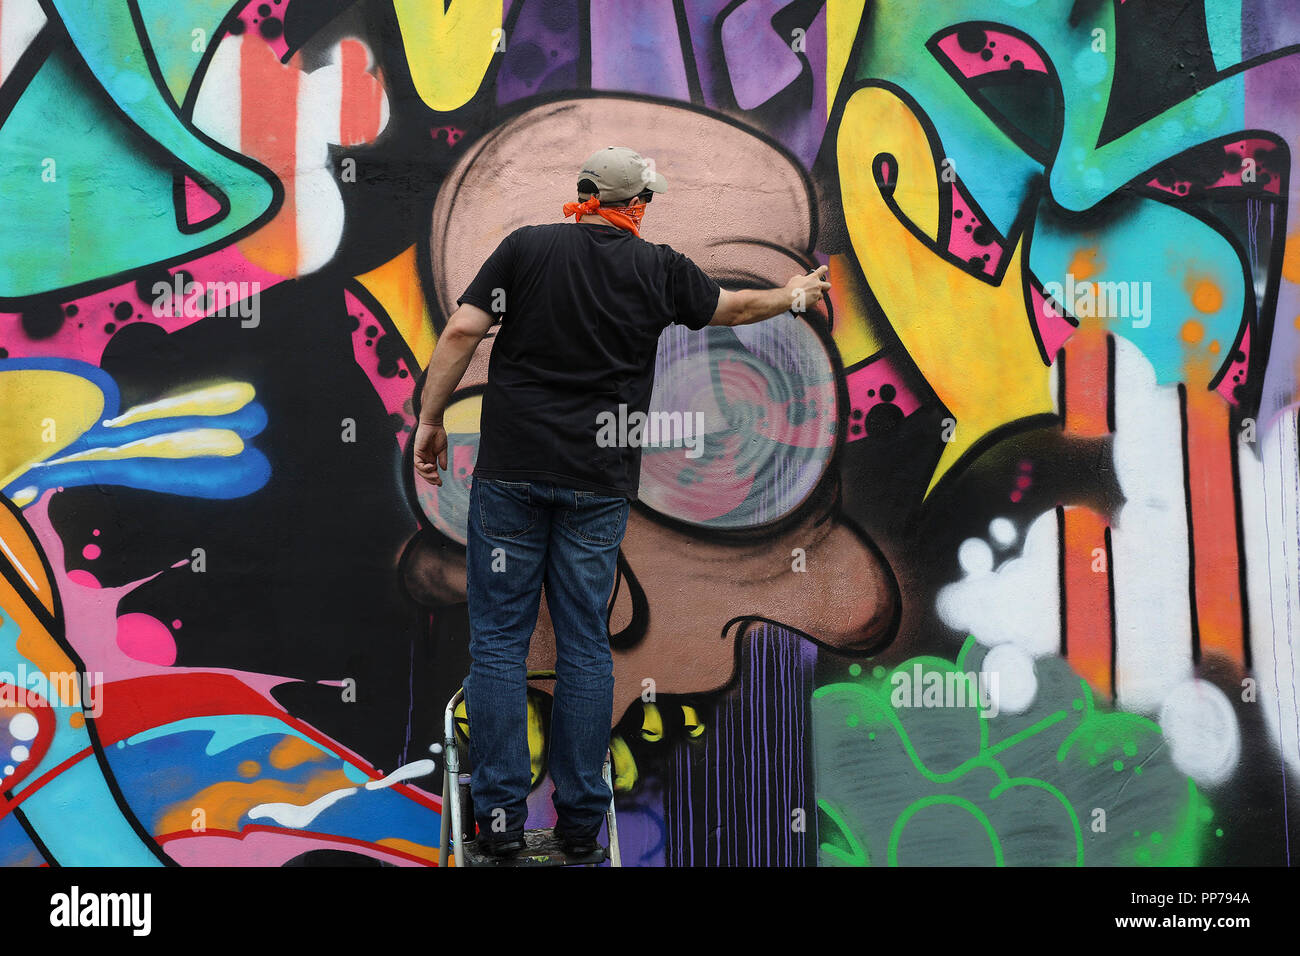 Houston 23rd sep 2018 an artist from new york city works on his